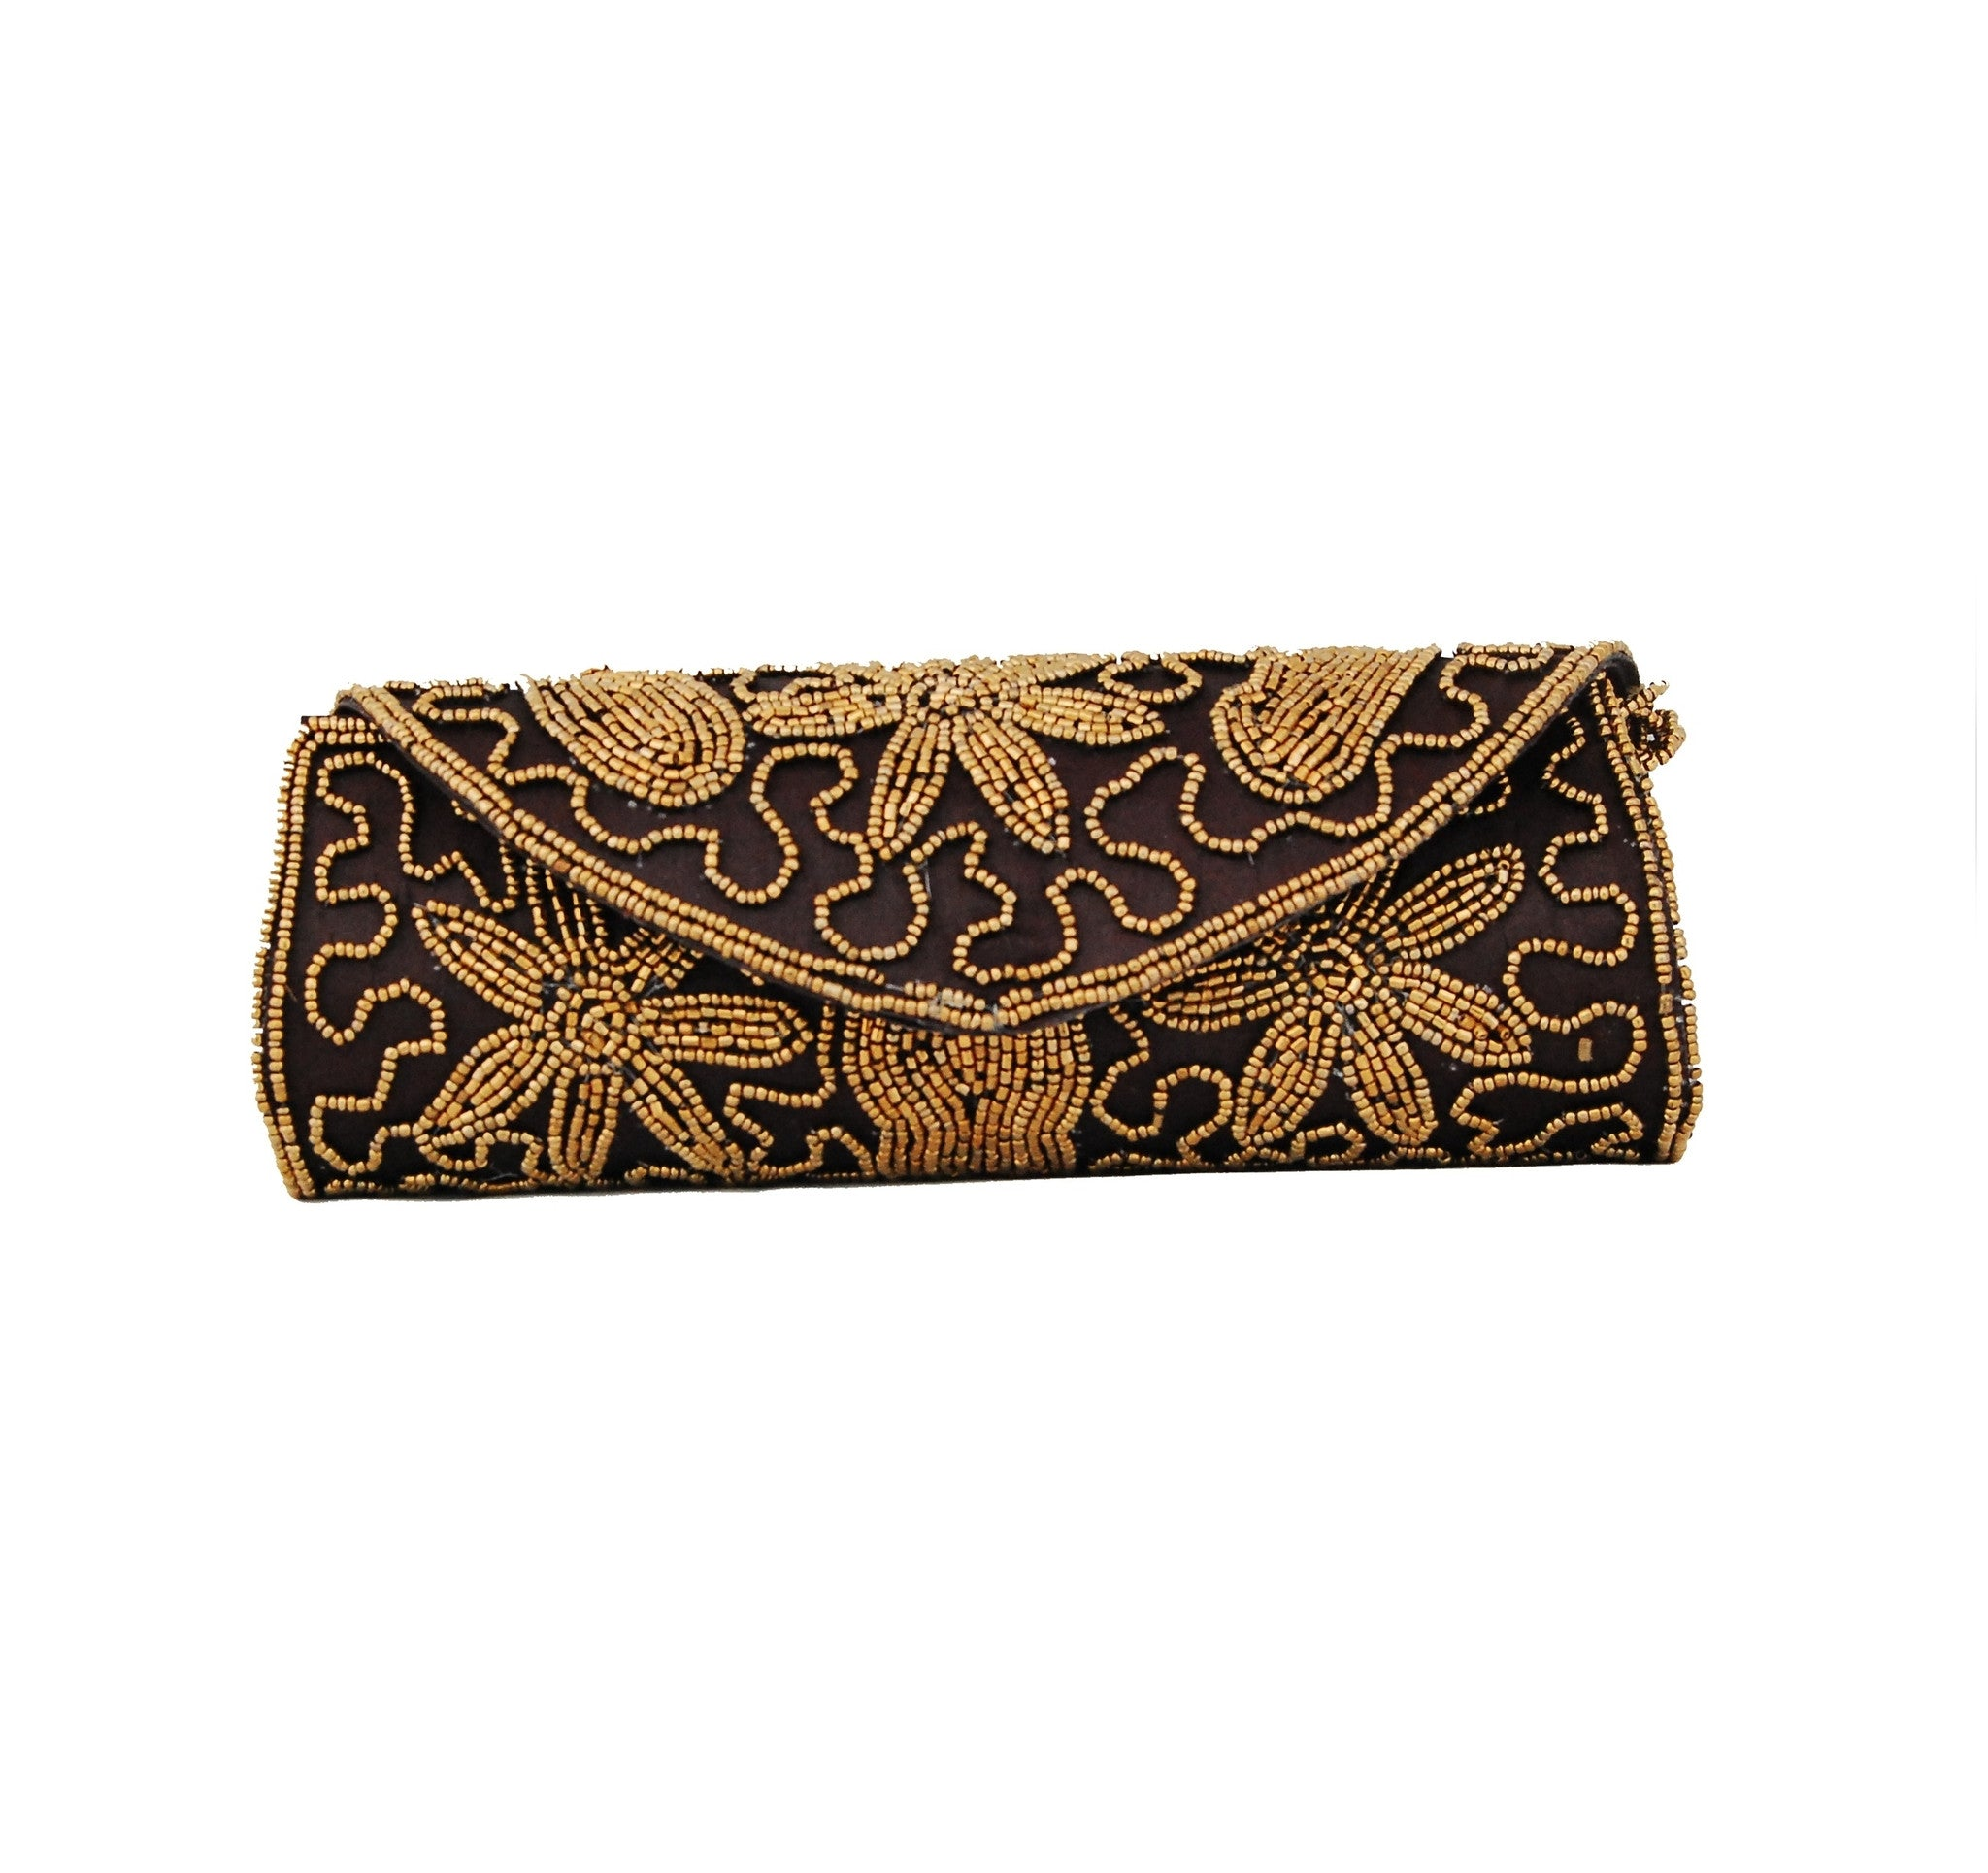 Black color Dupion Silk Clutch Bag with beads and Stone work - Boutique4India Inc.